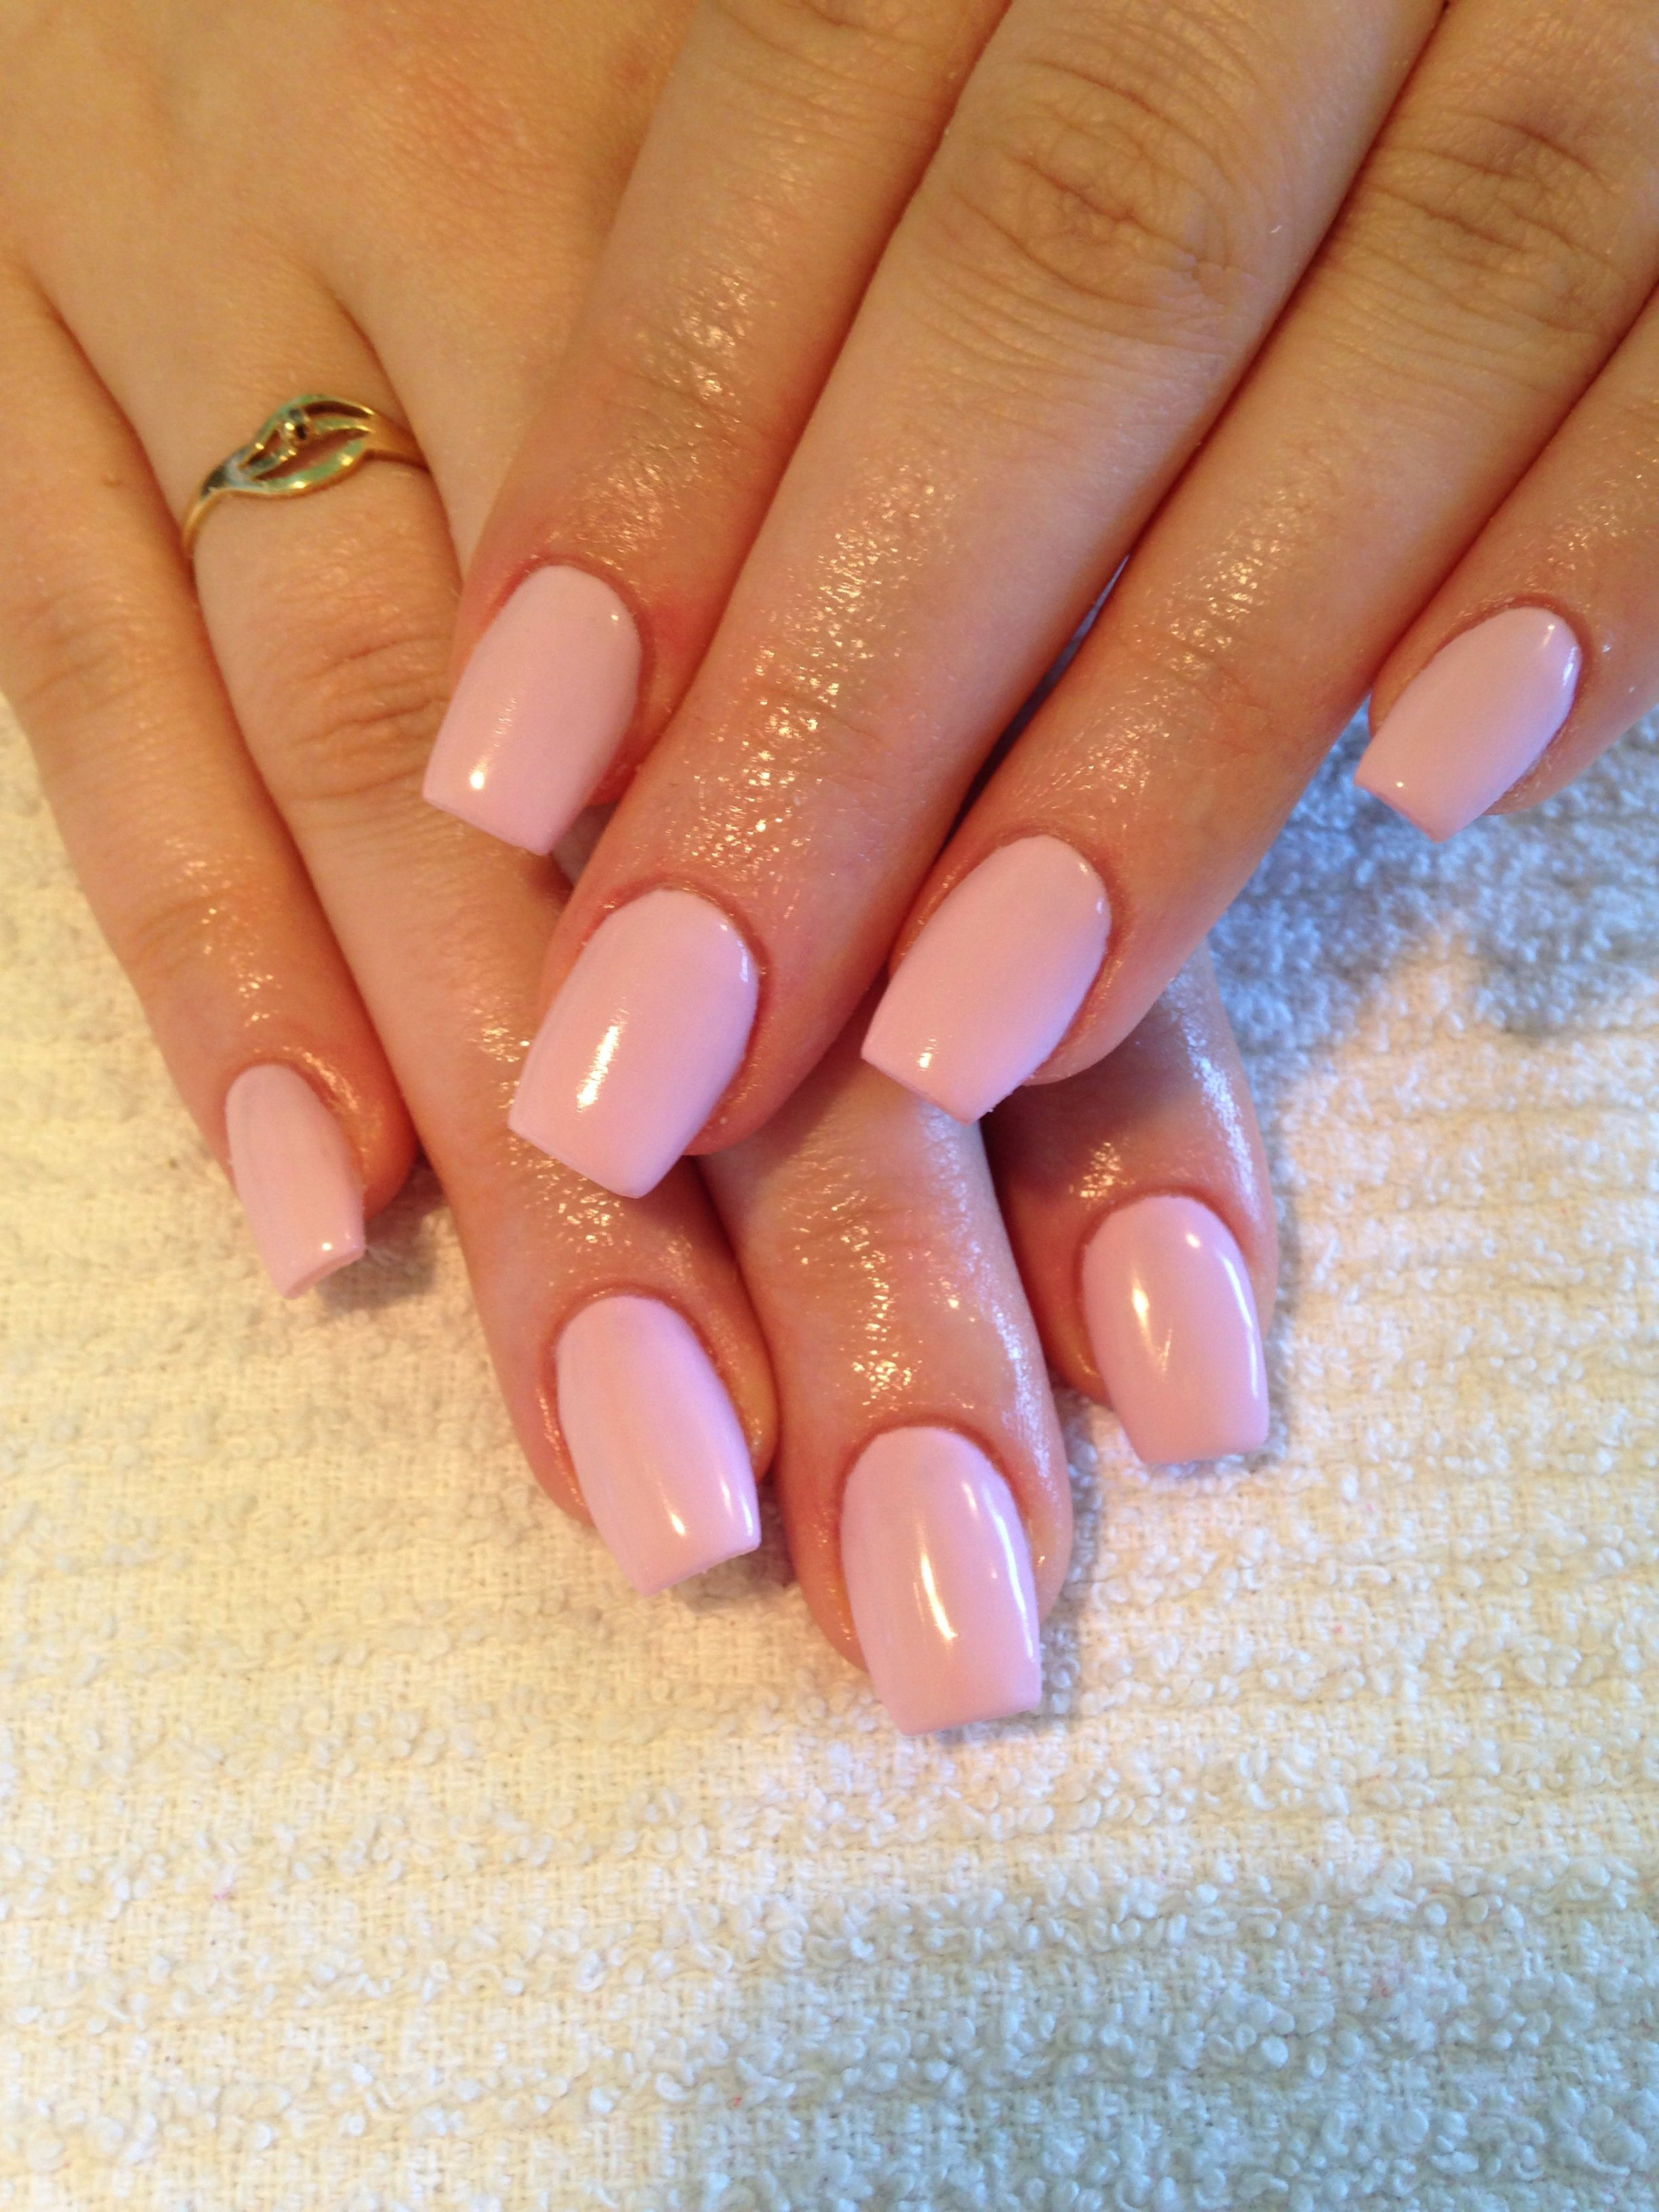 Pin By Mila Maria On My Work Pink Gel Nails Pastel Pink Nails Pink Nails